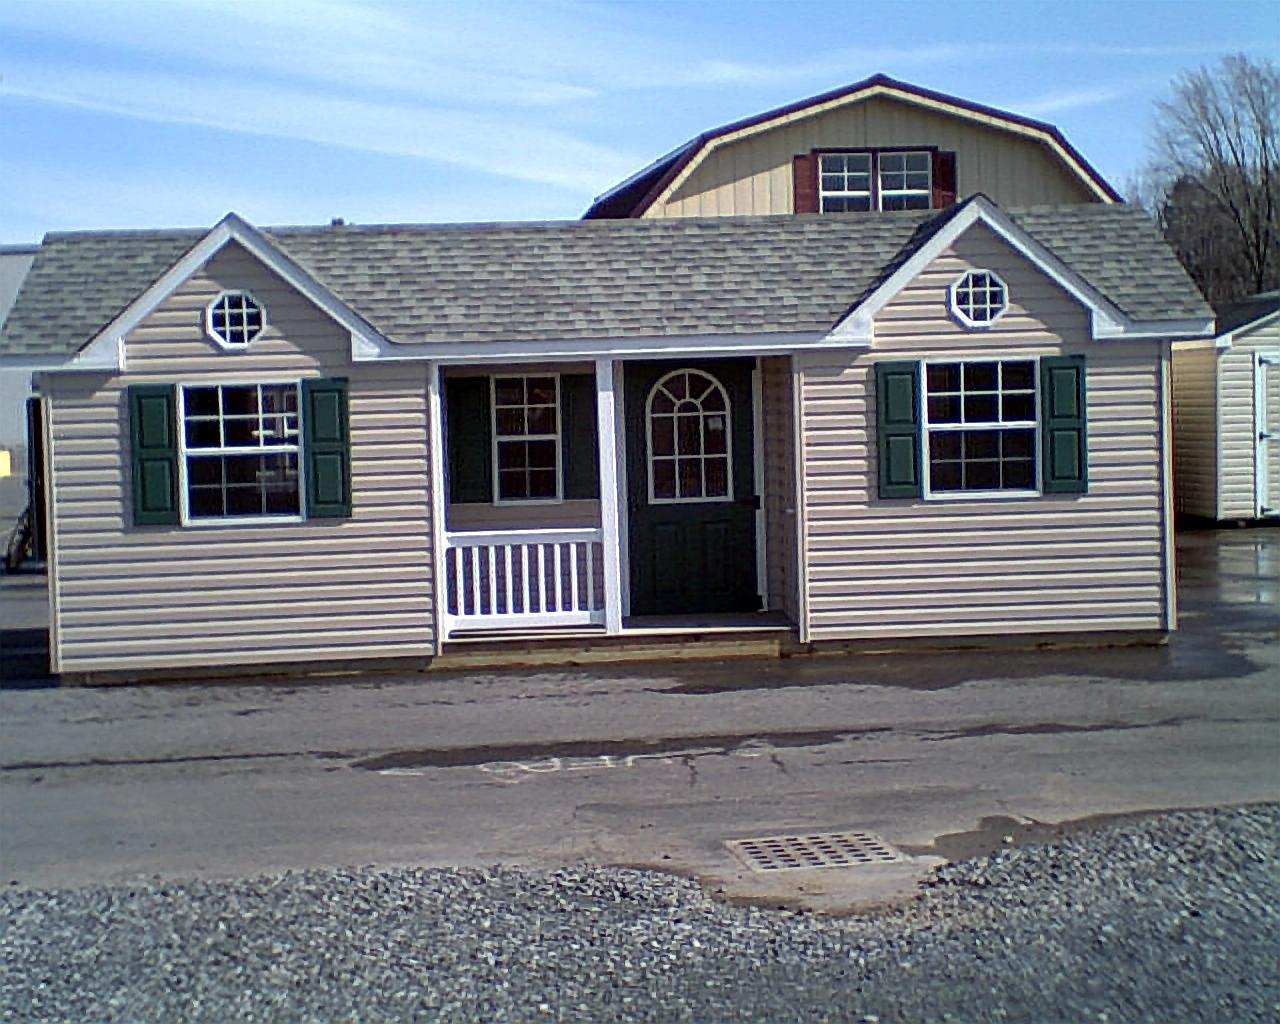 Deluxe with dormer transom windows and cupola - Vinyl Cottage Twin Peaks Vinyl 12 X 24 With 6 Foot Porch Front View